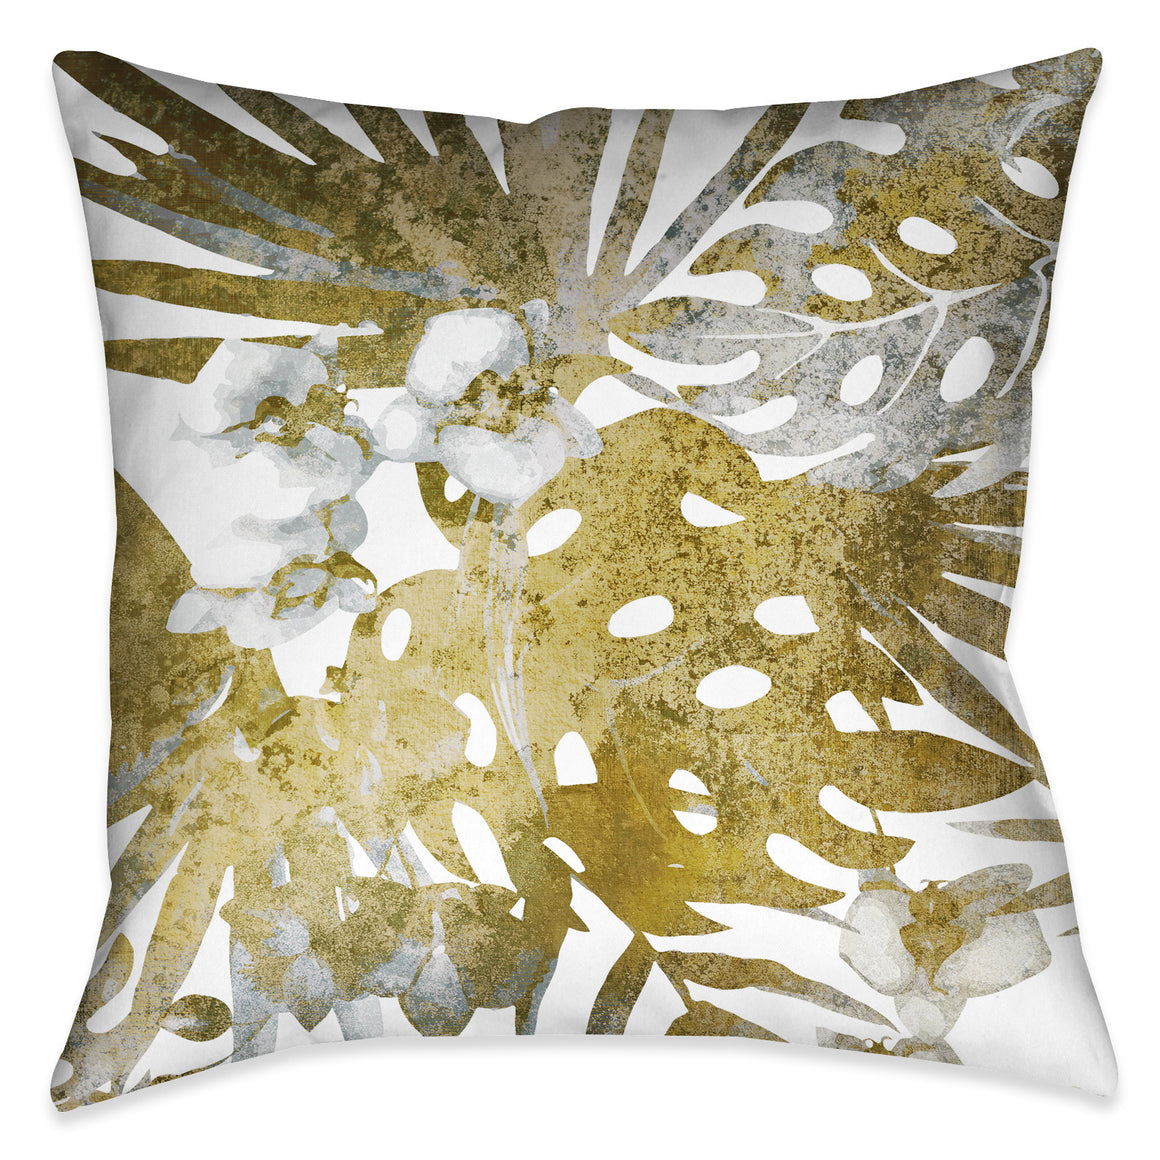 Gilded Tropical Bloom II Outdoor Decorative Pillow